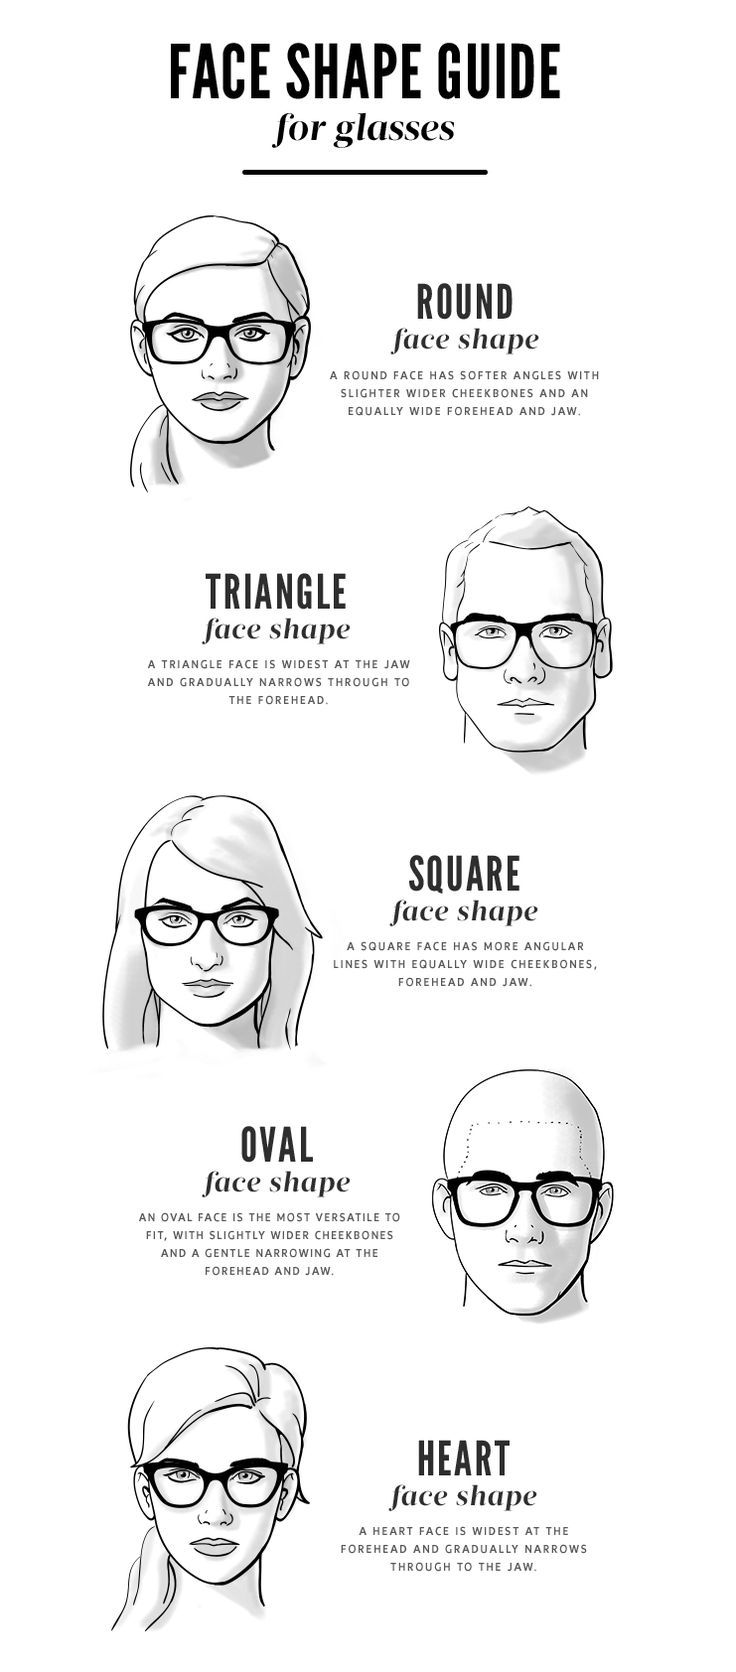 Best Eyeglass Frame Shape For Square Face : Face Shape Guide for Glasses Which glasses shape best ...